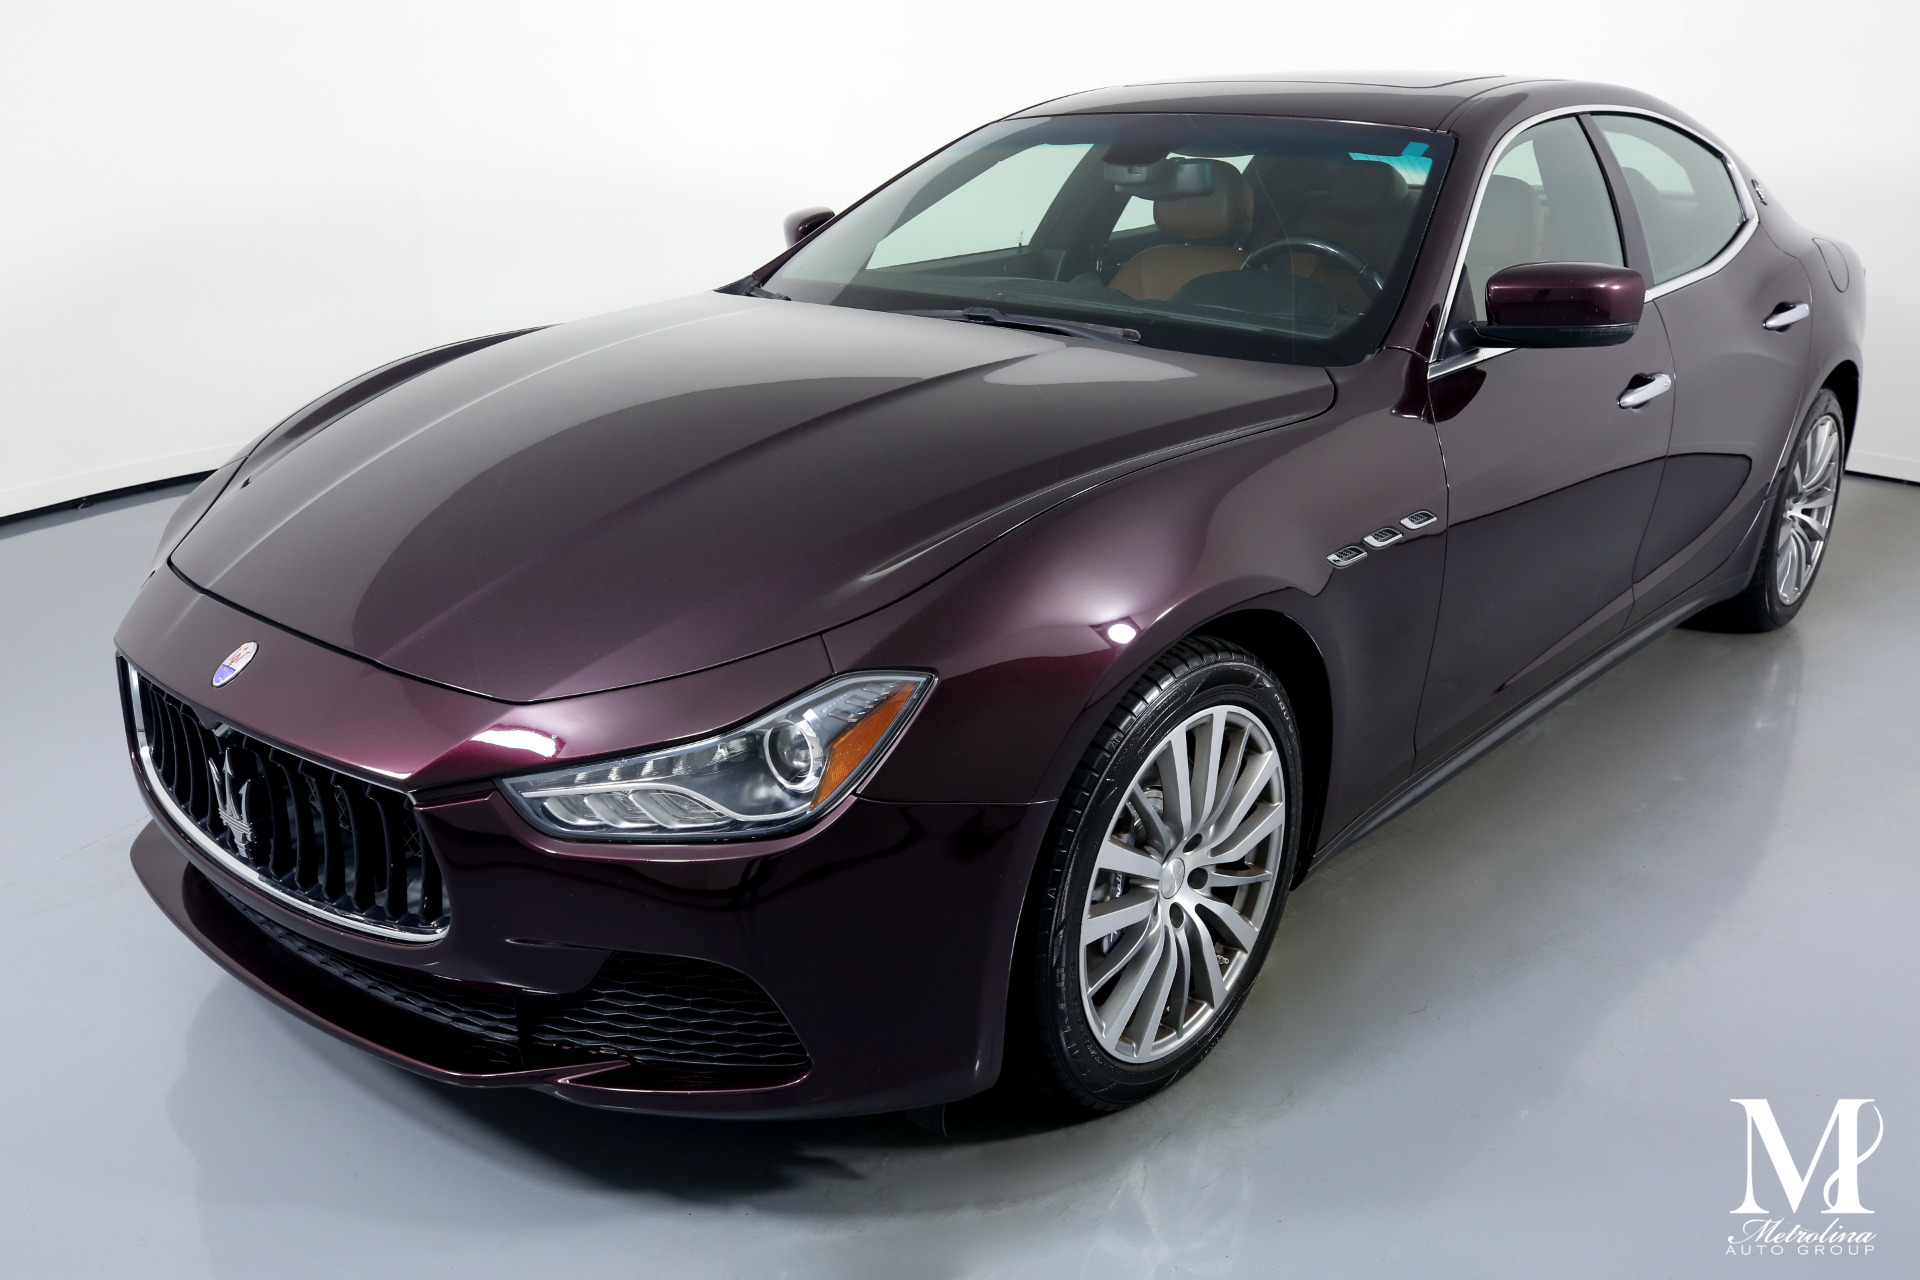 Used 2015 Maserati Ghibli S Q4 for sale Call for price at Metrolina Auto Group in Charlotte NC 28217 - 4